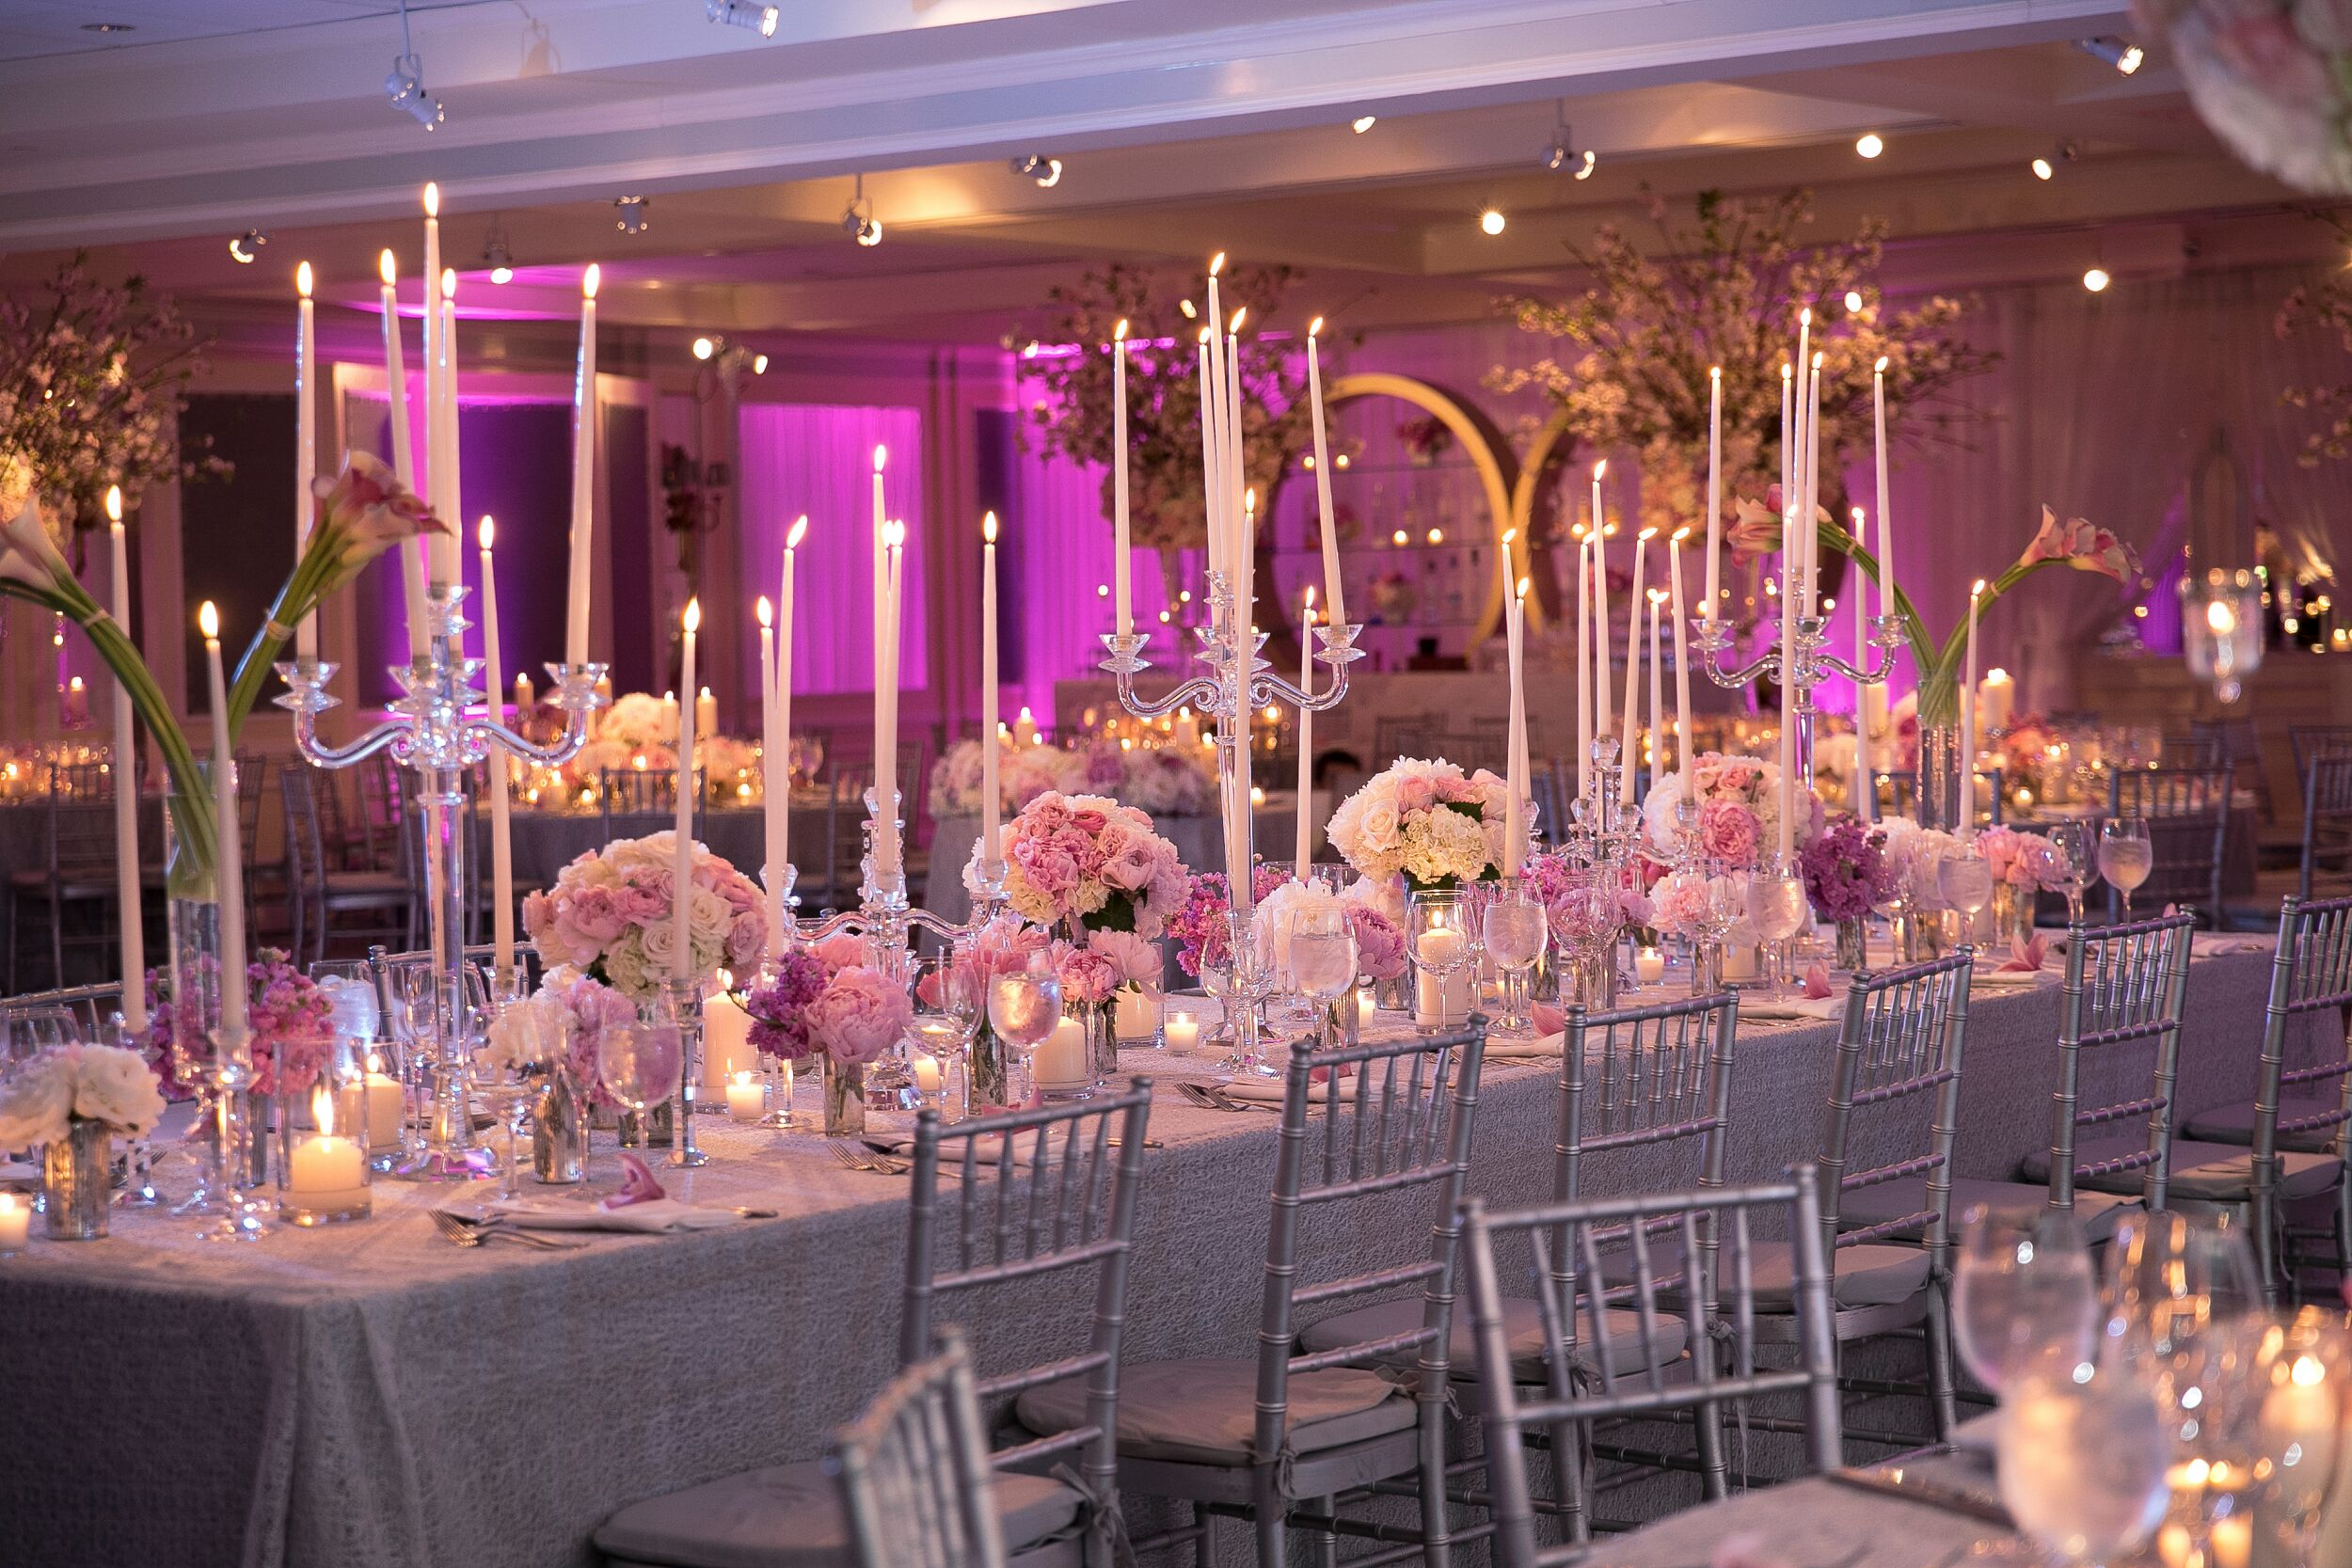 Long Reception Table with Pink Centerpieces and Tall Candelabras